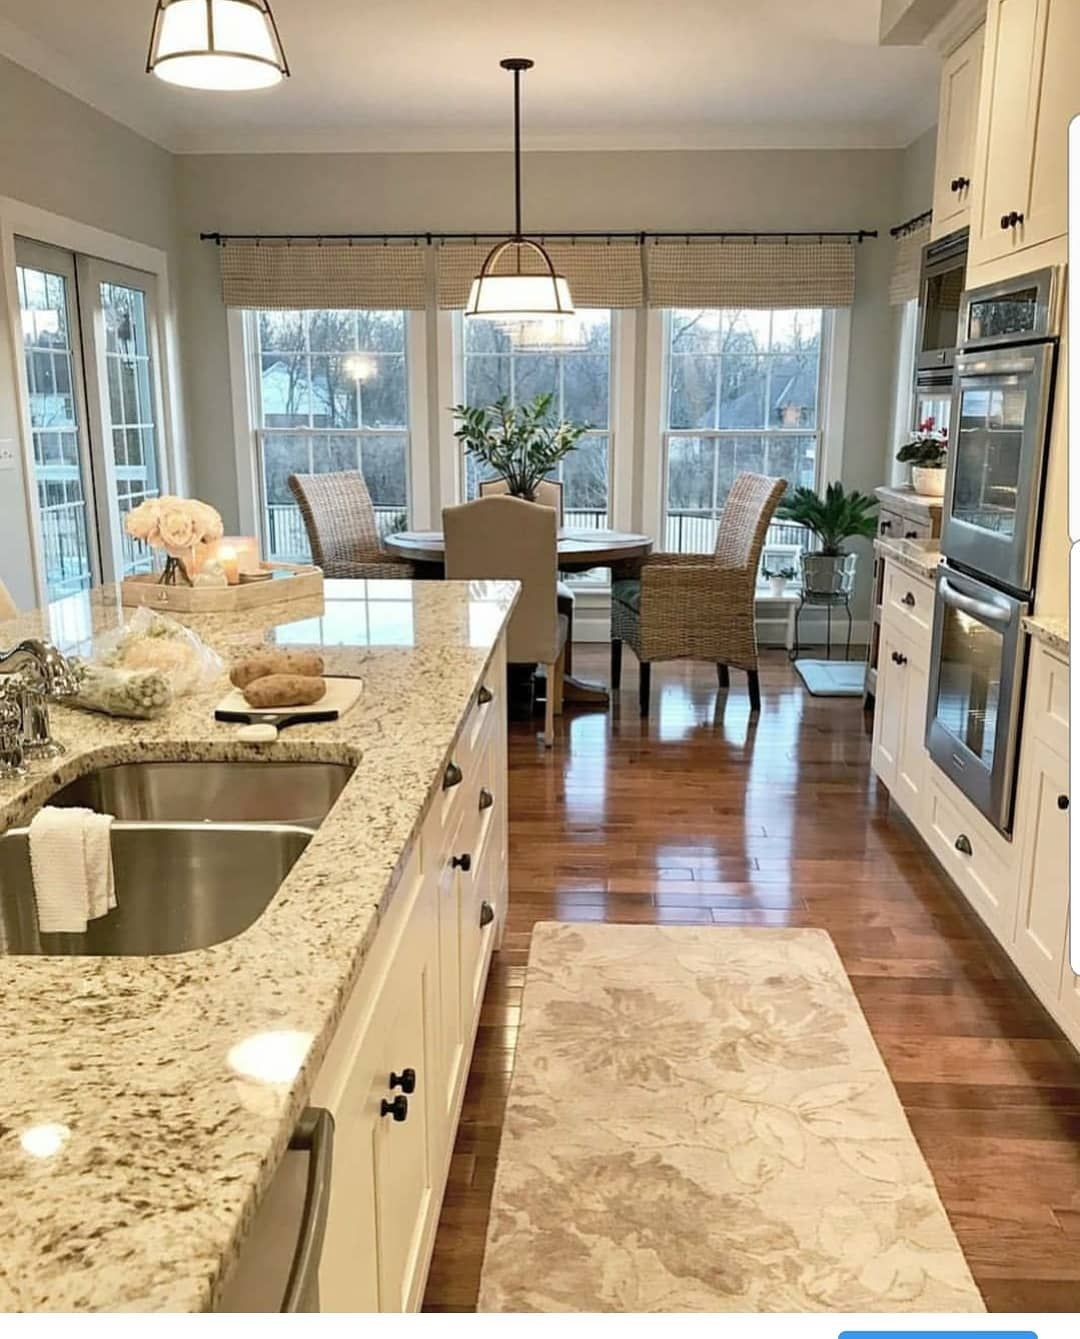 grace r on instagram warm inviting kitchen by wowilovethat homedesign interiordecor on r kitchen cabinets id=24404